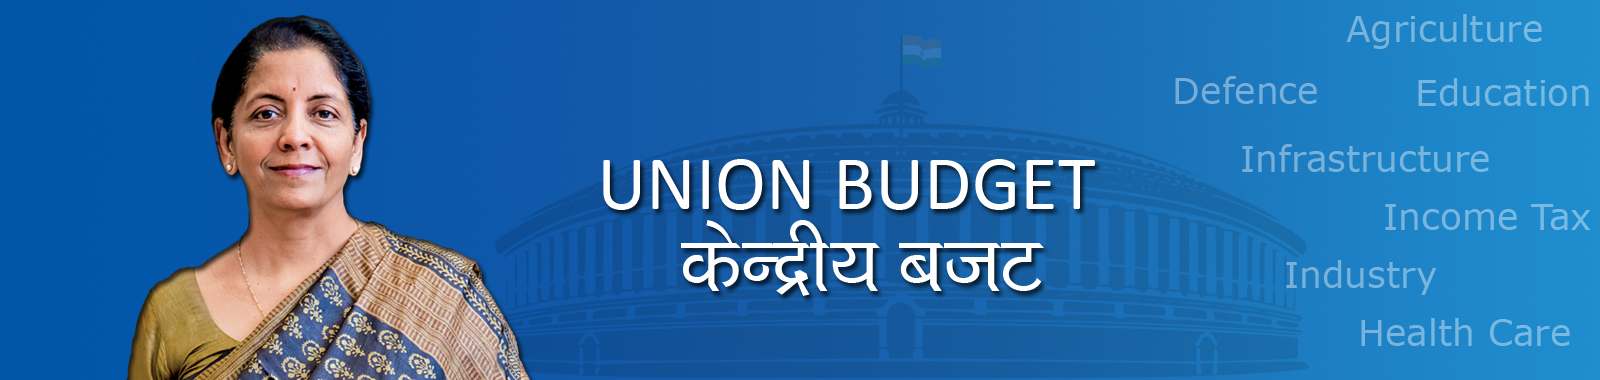 Union Budget of India